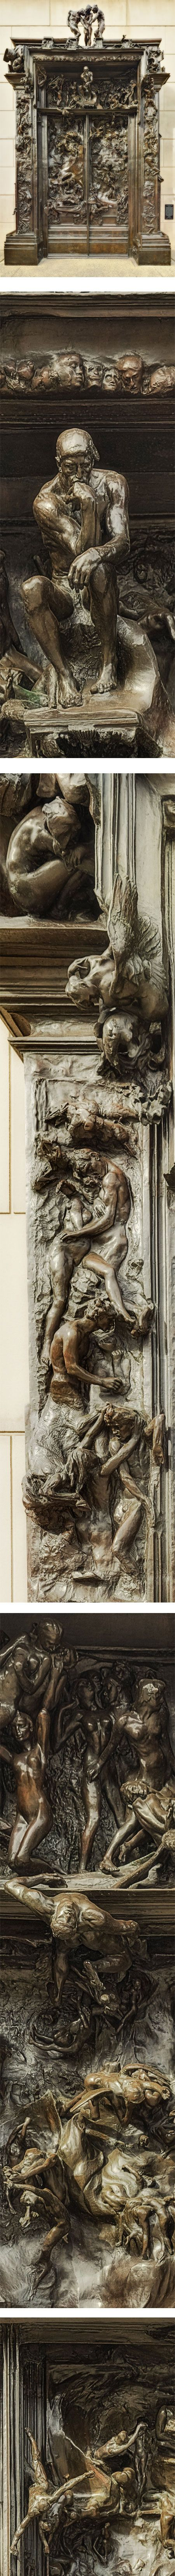 The Gates of Hell, Auguste Rodin, photo by J.W. Kern